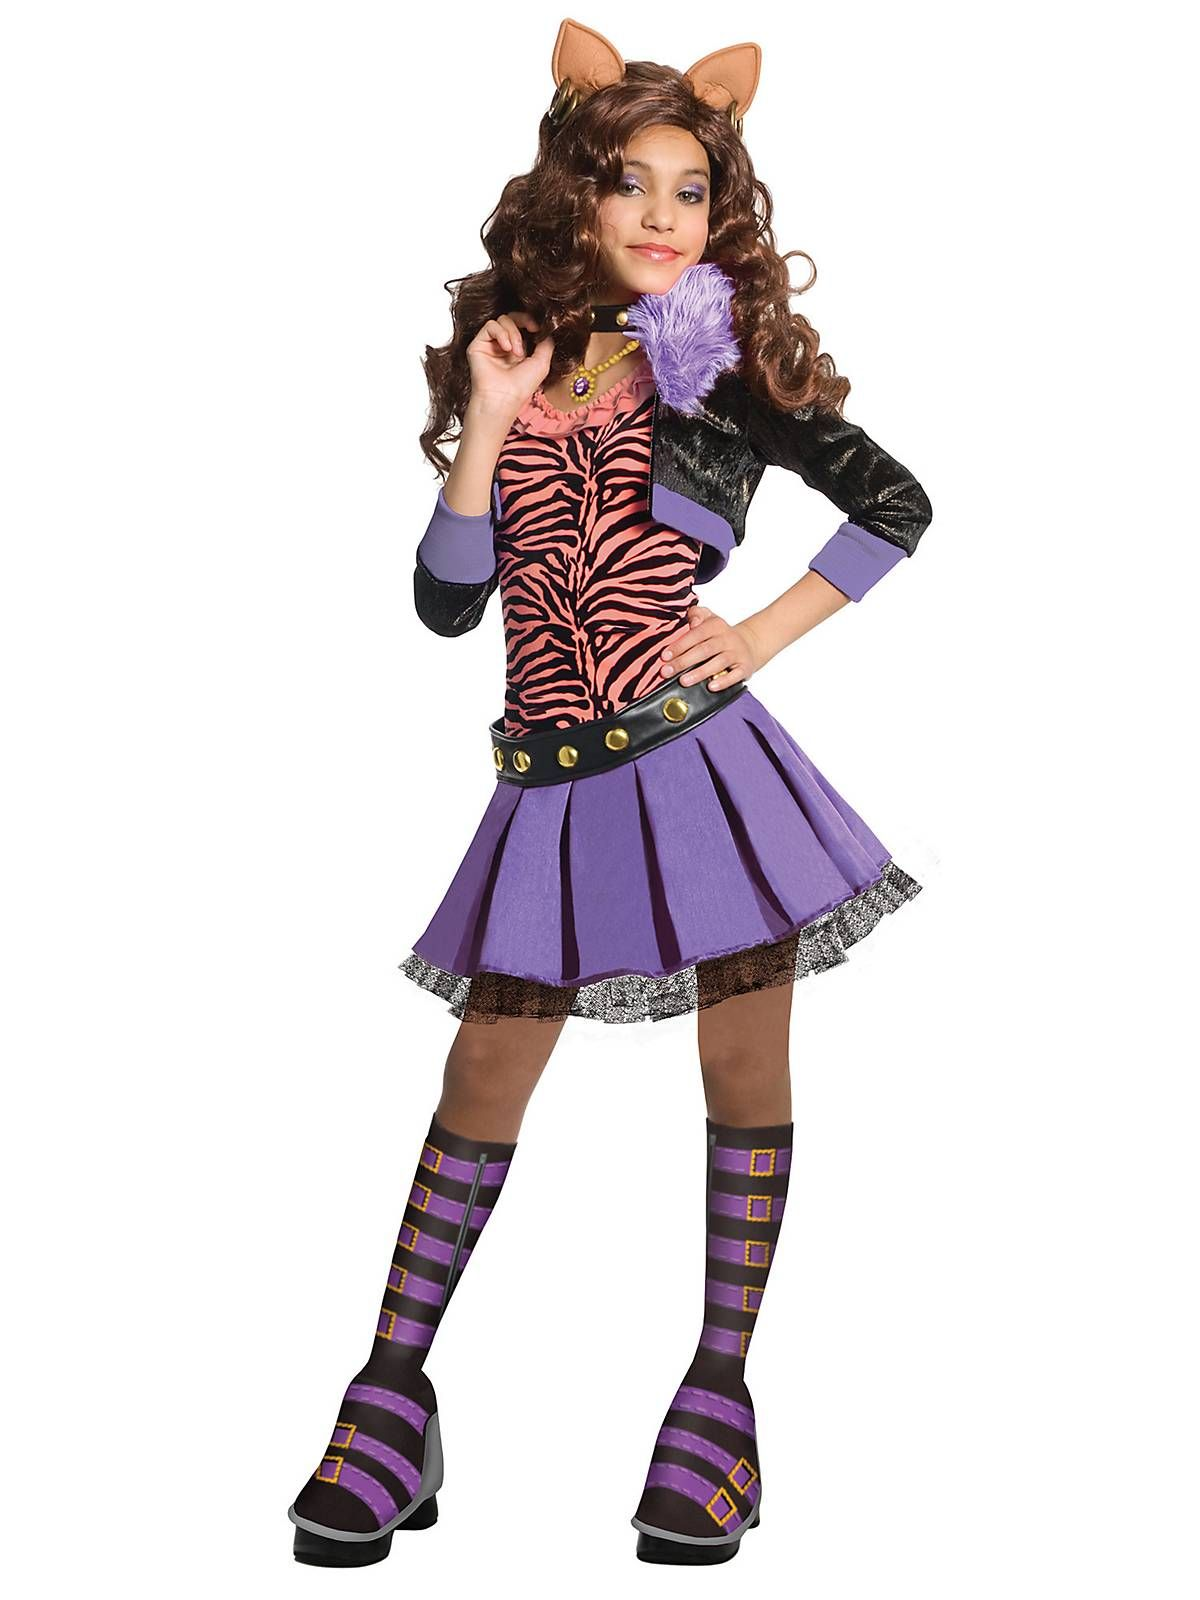 Deluxe Clawdeen Wolf Costume | Cheap Monster High Costumes for Girls  sc 1 st  Pinterest & Deluxe Clawdeen Wolf Monster High Costume | vacation planning ...